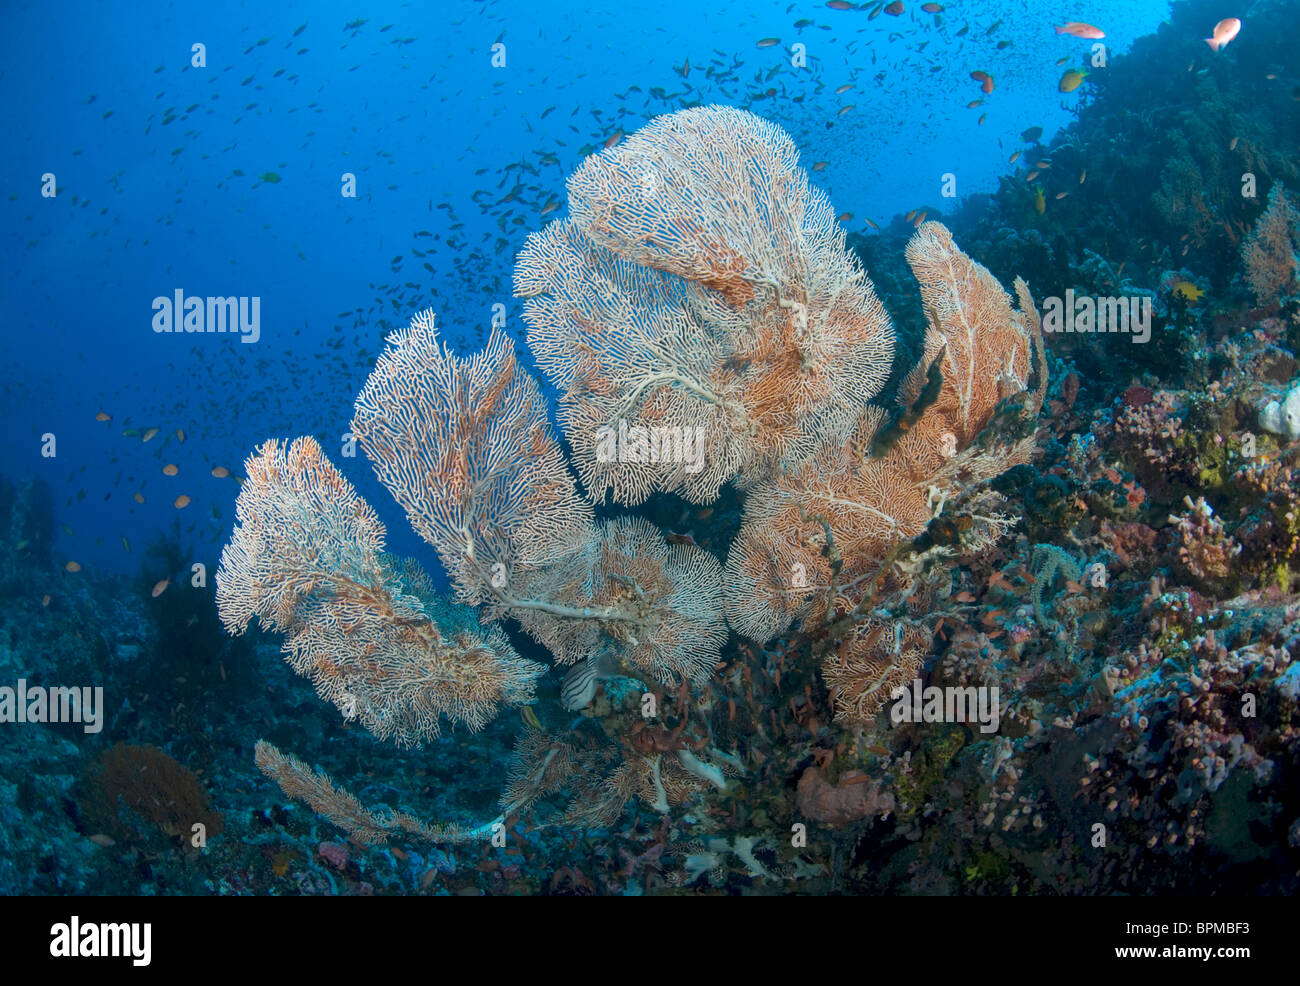 Sea fans on coral reefs, Puerto Galera, Philippines, Pacific Ocean - Stock Image